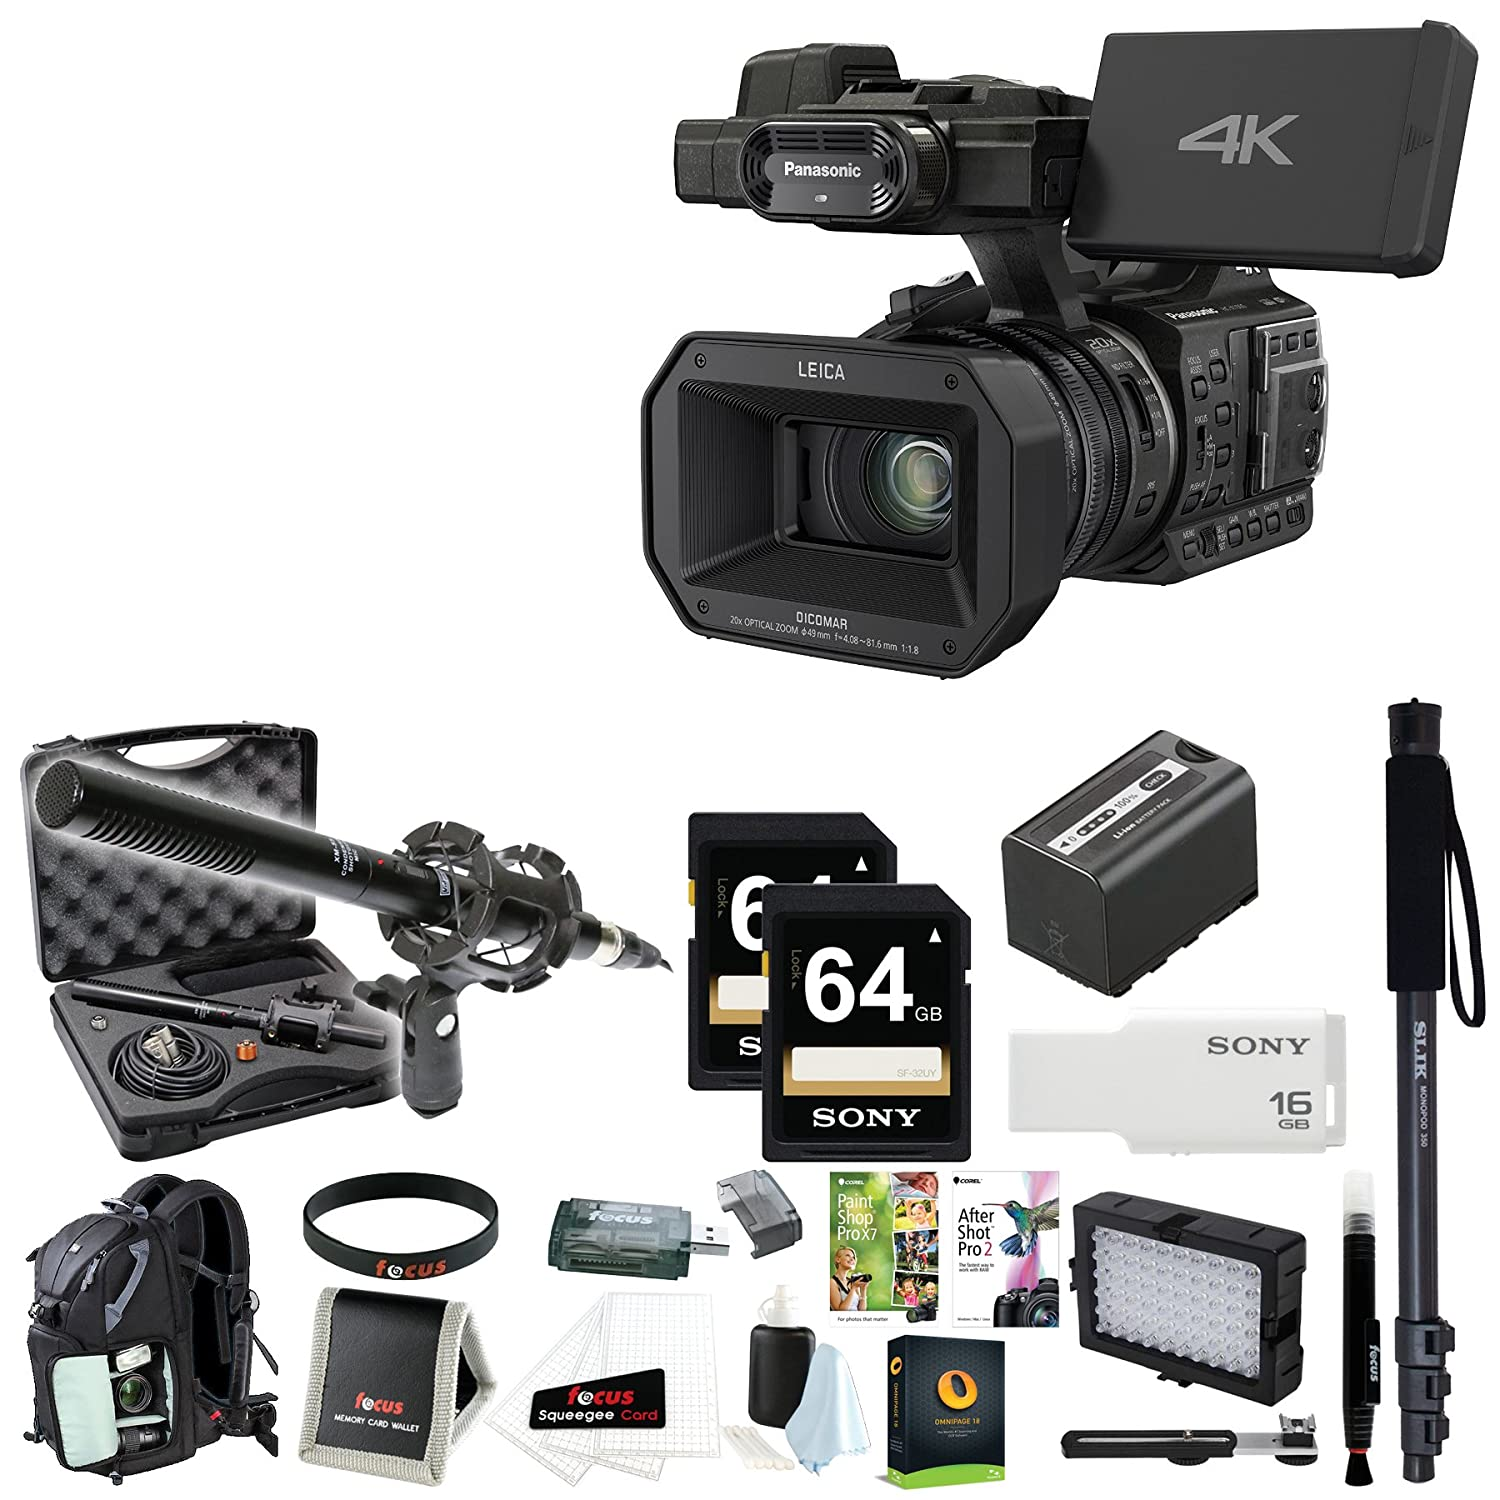 Best Camcorders Deals And For Sale Dealfaves Camcorder Panasonic Hc Wx970 4k Ultra Hd X1000 60p 50p Black Focus Deluxe